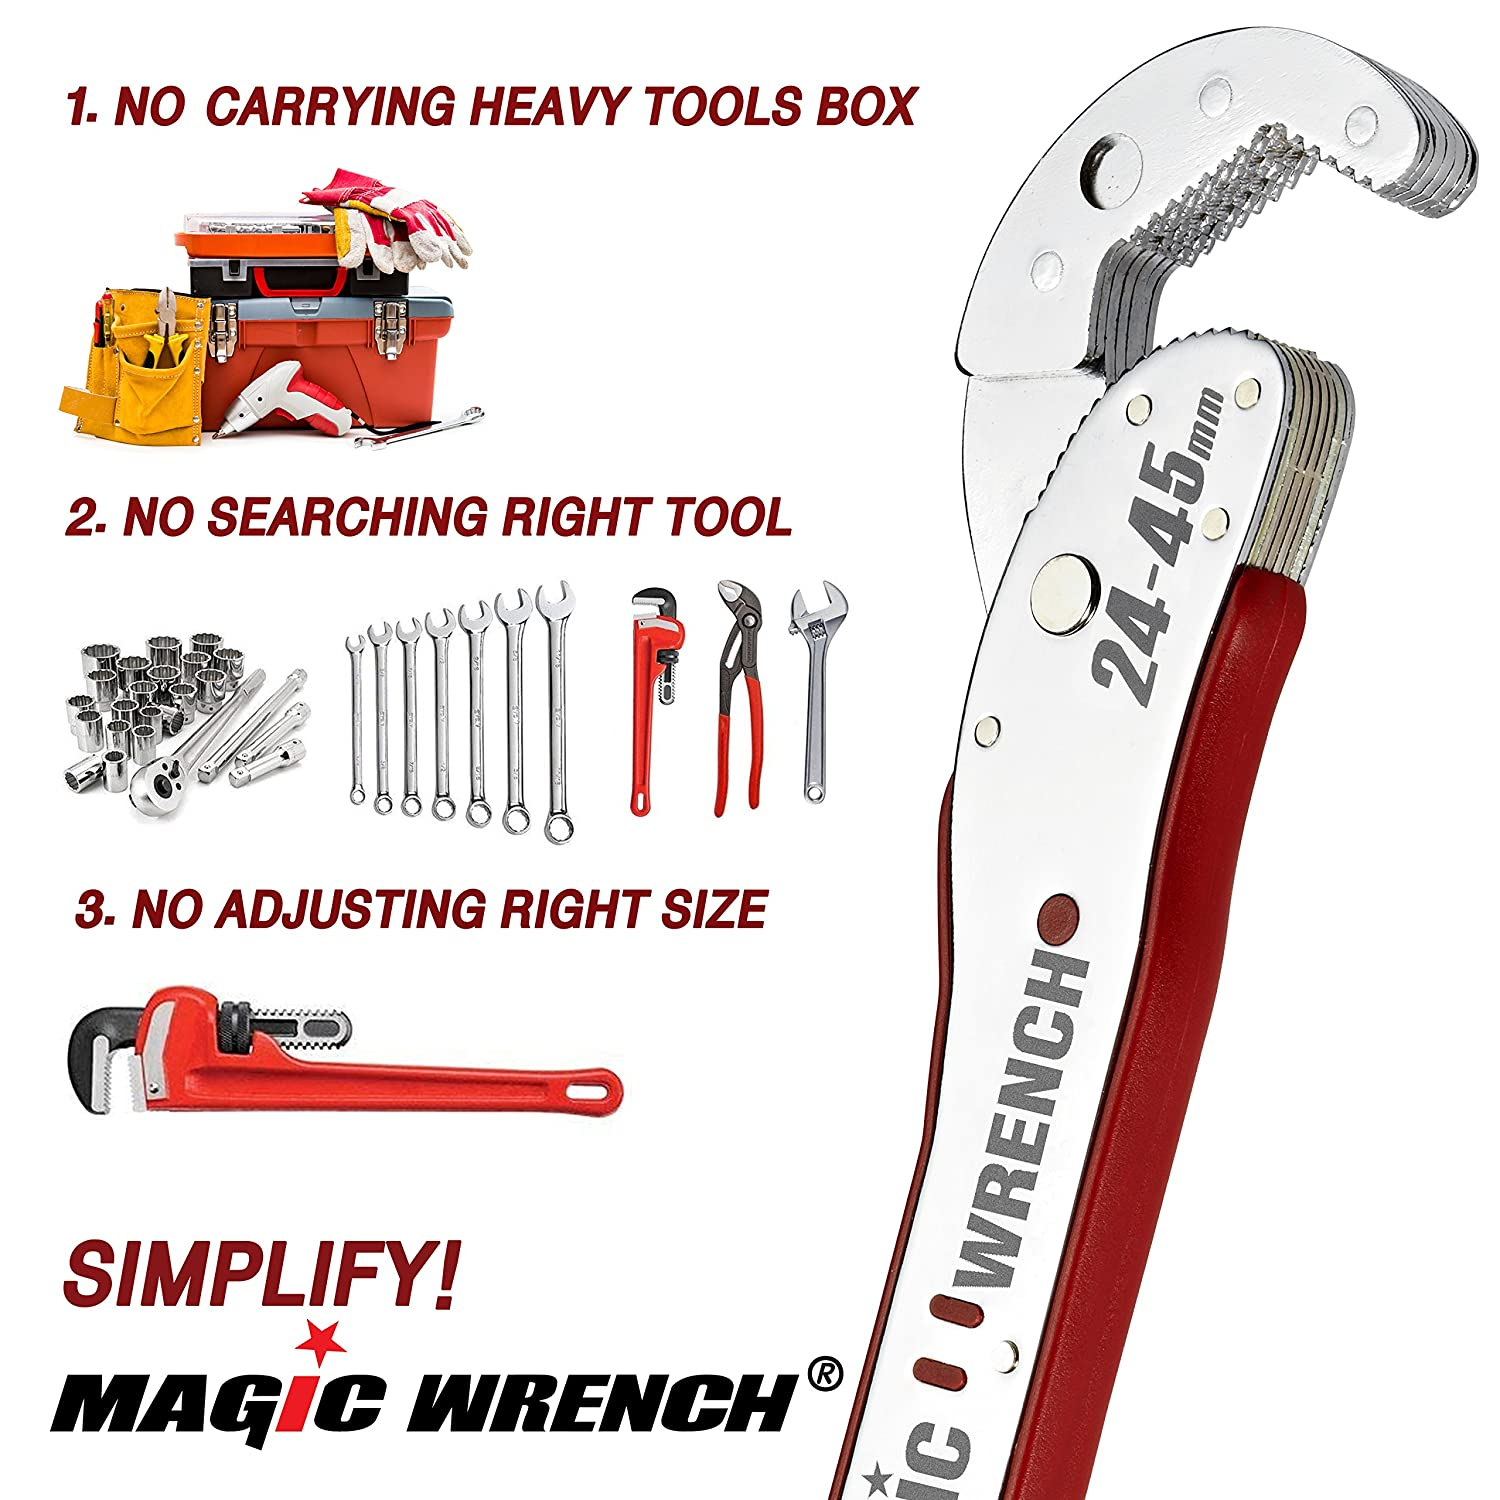 Multi-function Magic Wrench Universal Adjustable auto-ratcheting works as reversible ratchet pop socket combination /& pipe monkey spanner sae crescent nut gear-wrench set for craftsman /& plumbers